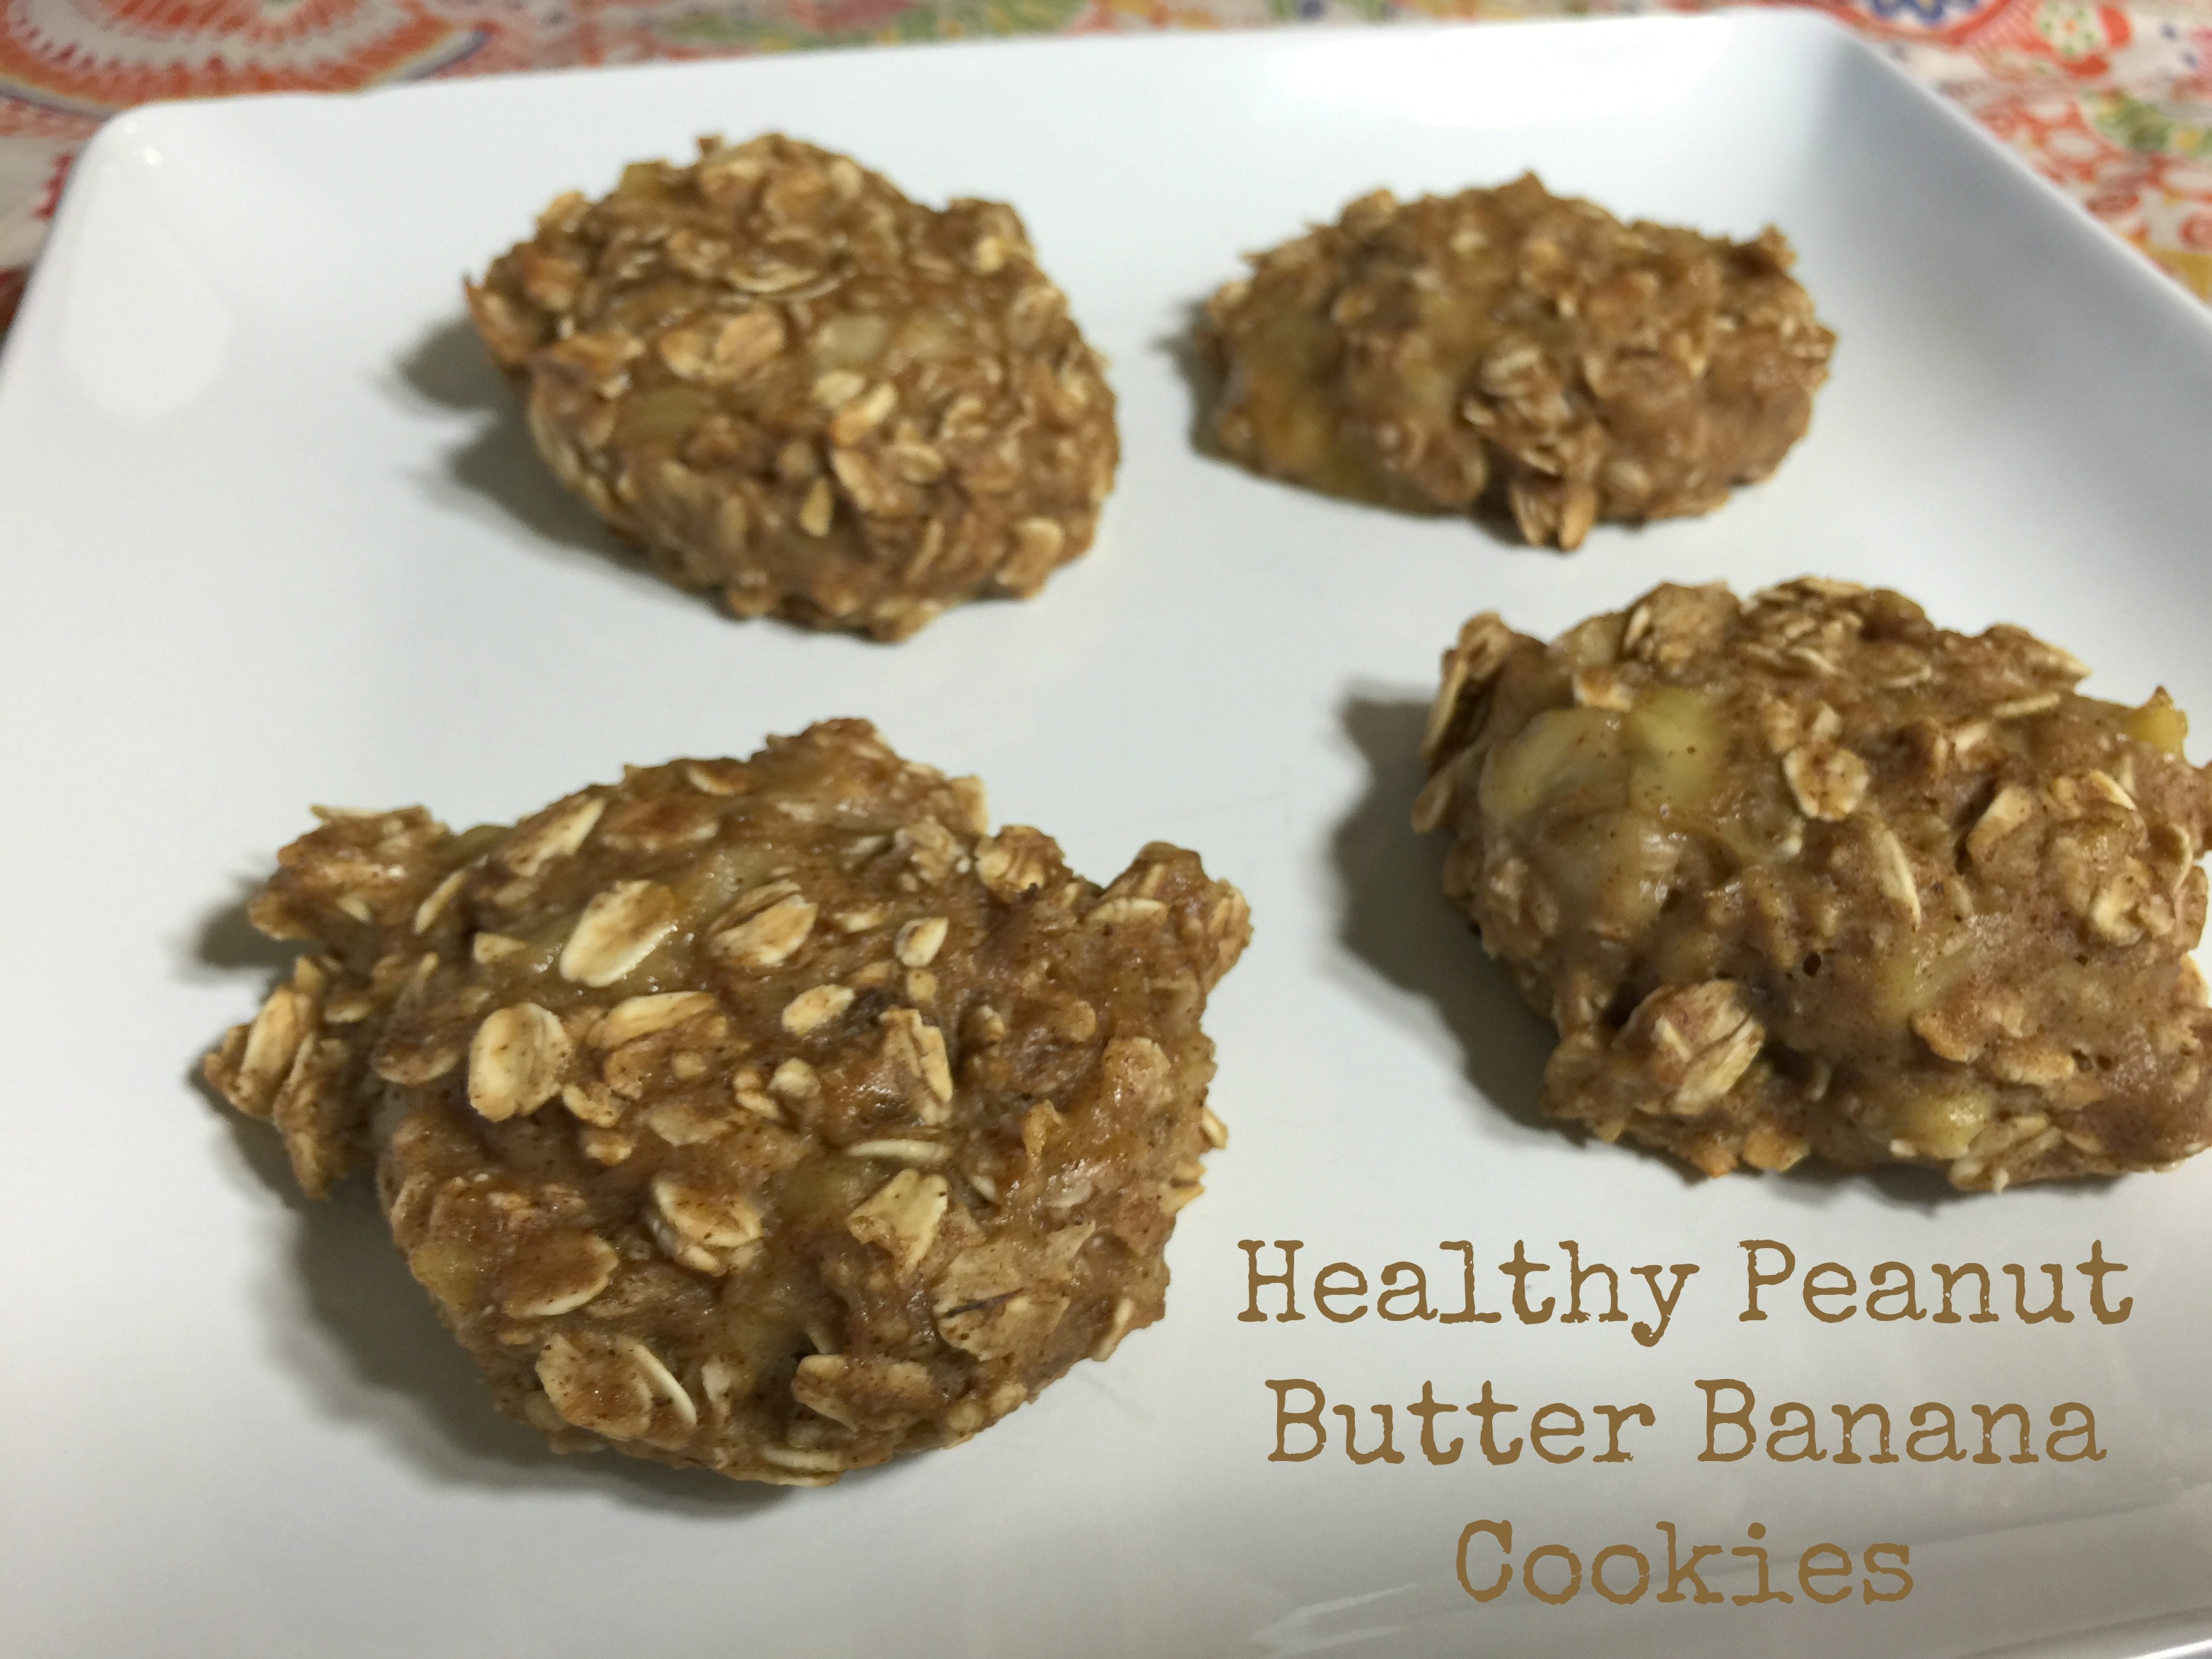 Healthy Peanut Butter Banana Cookies  Healthy Peanut Butter Banana Cookies A Sparkle of Genius